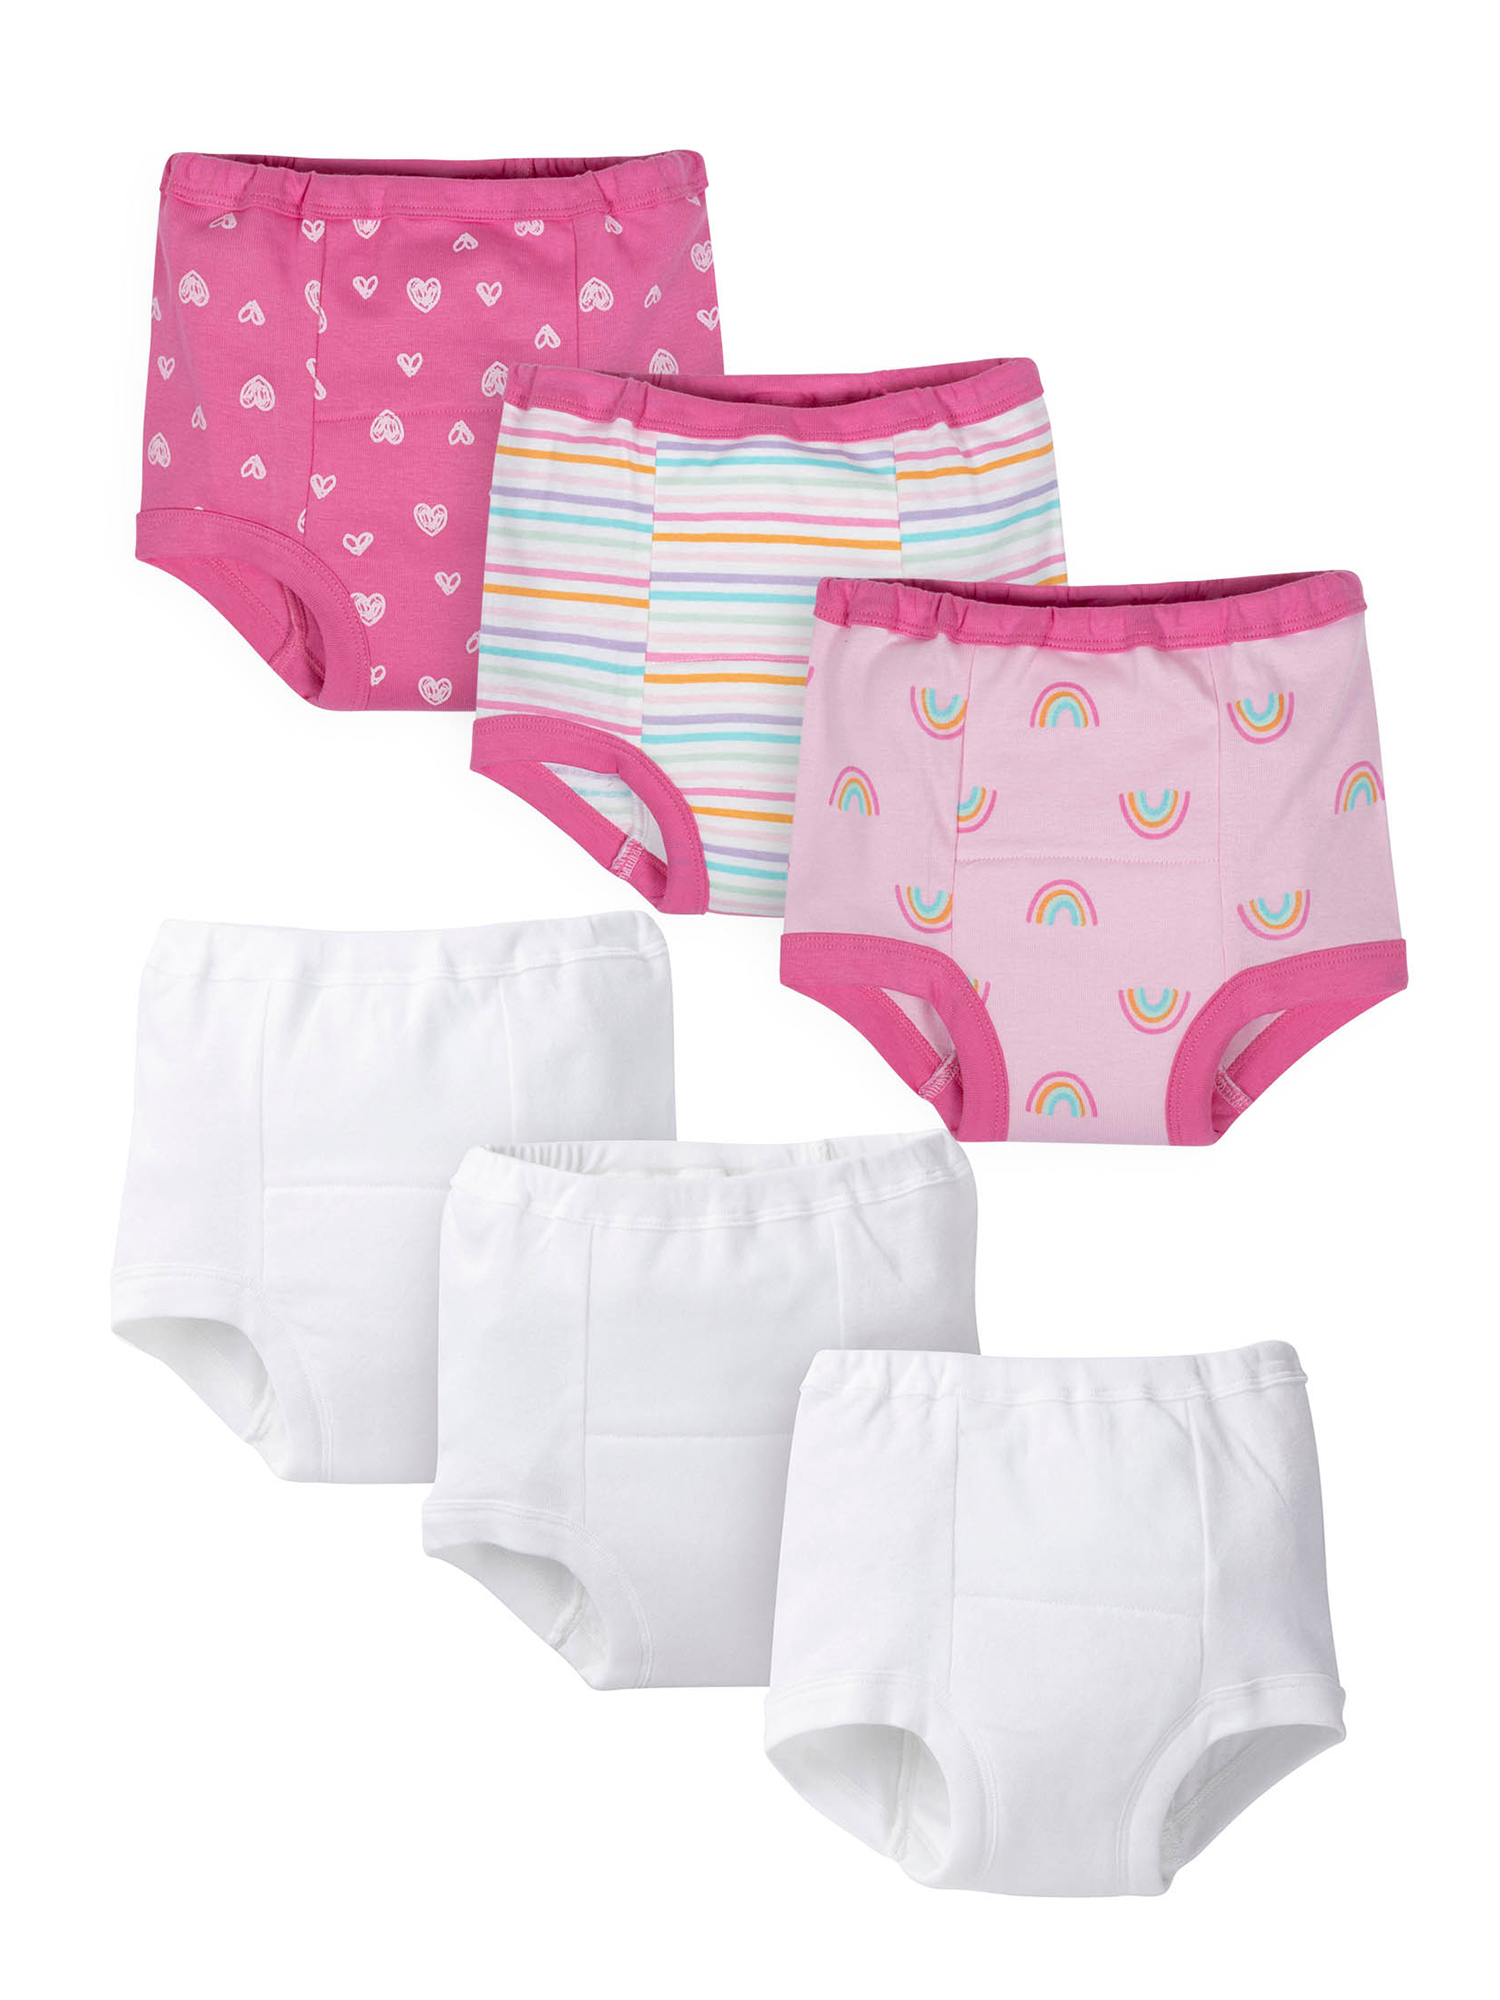 Gerber - Gerber Organic Toddler Girls Training Pants, 6 ...